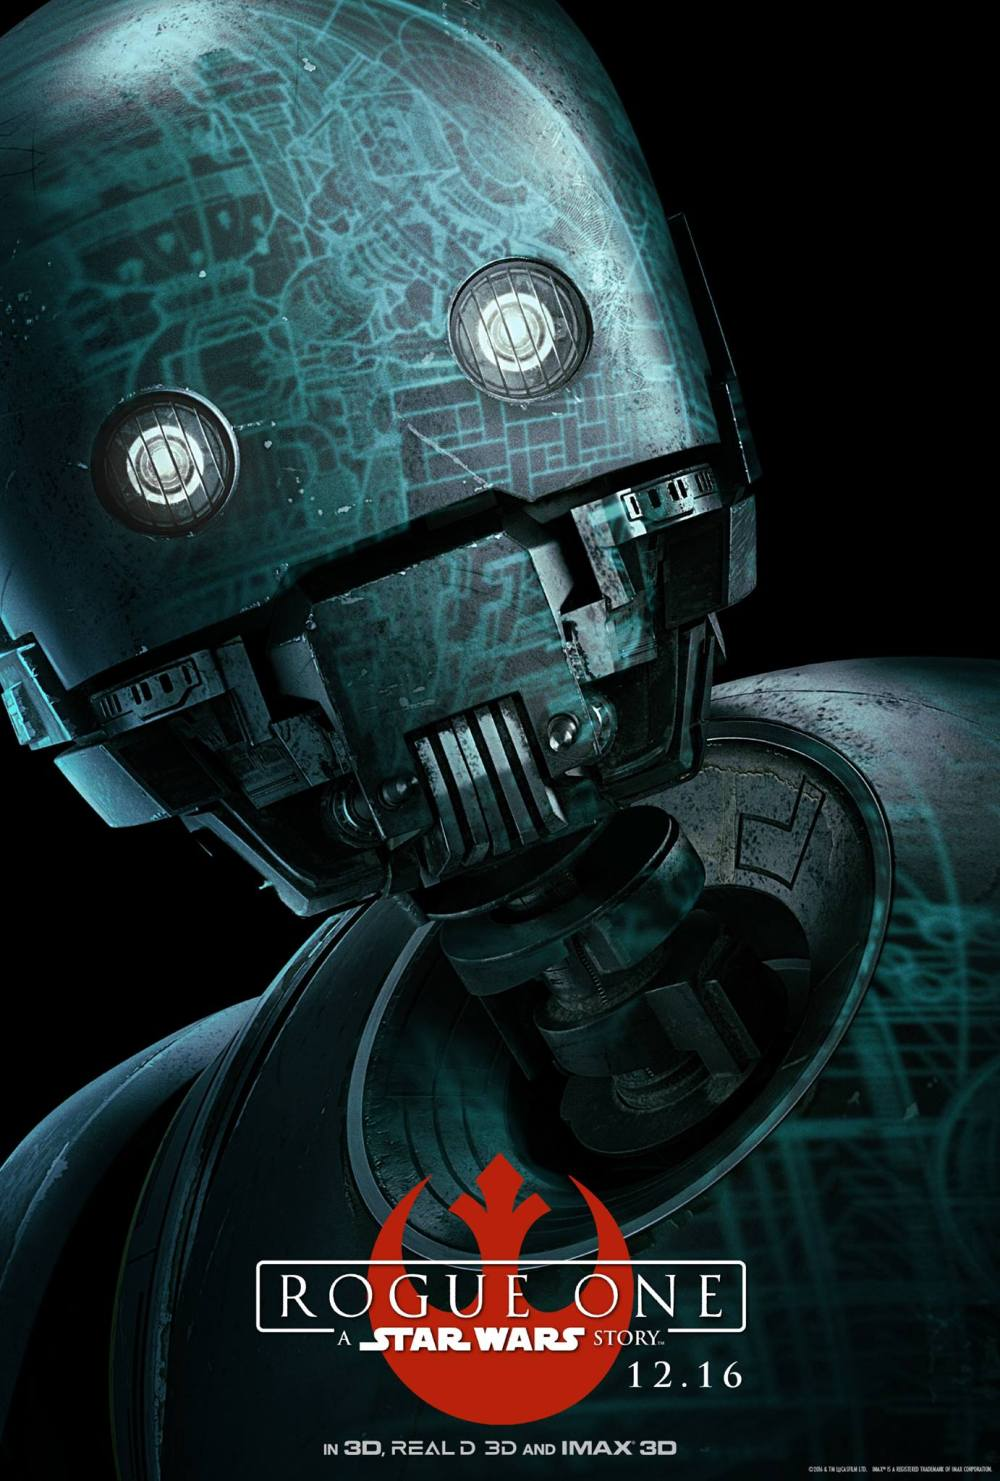 star-wars-rogue-one-k-2so-poster.jpg